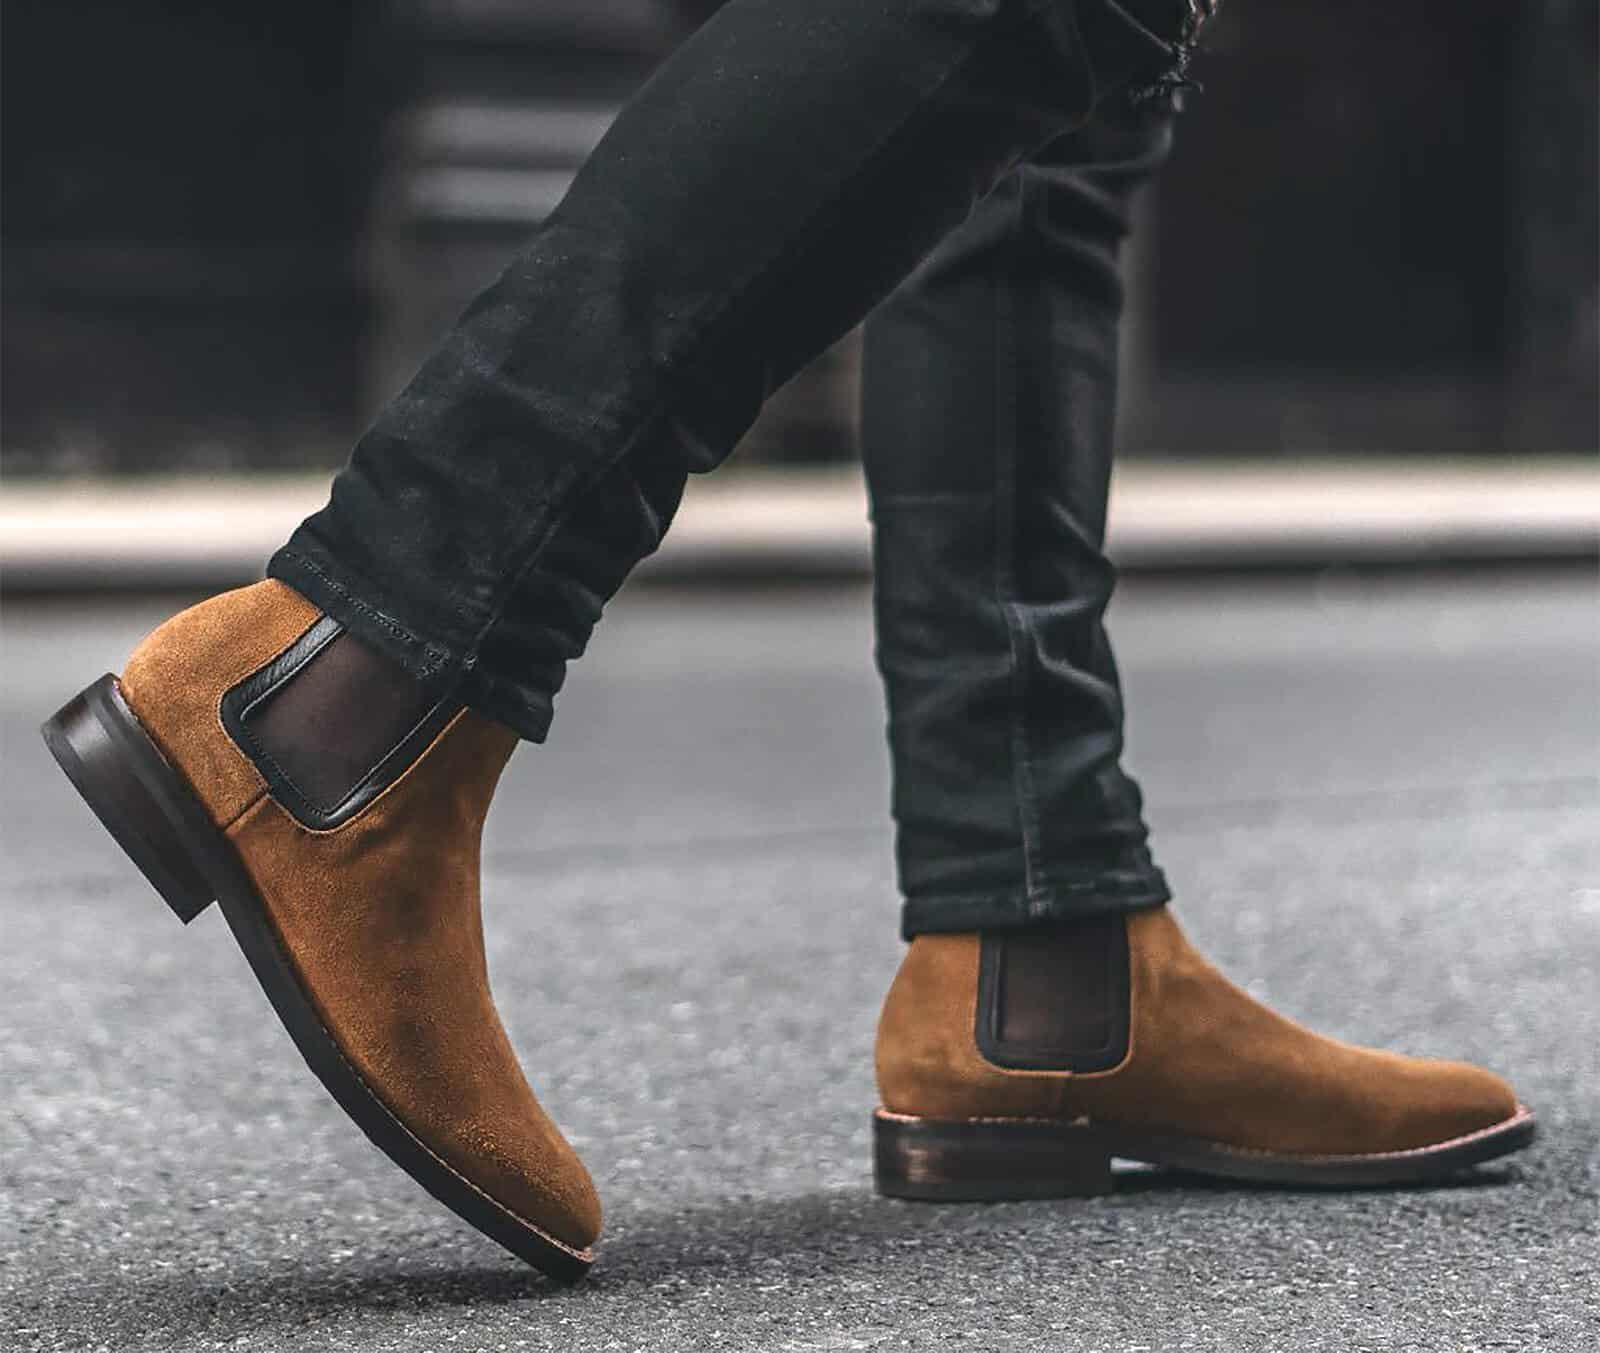 The Most Stylish Chelsea Boots For Men